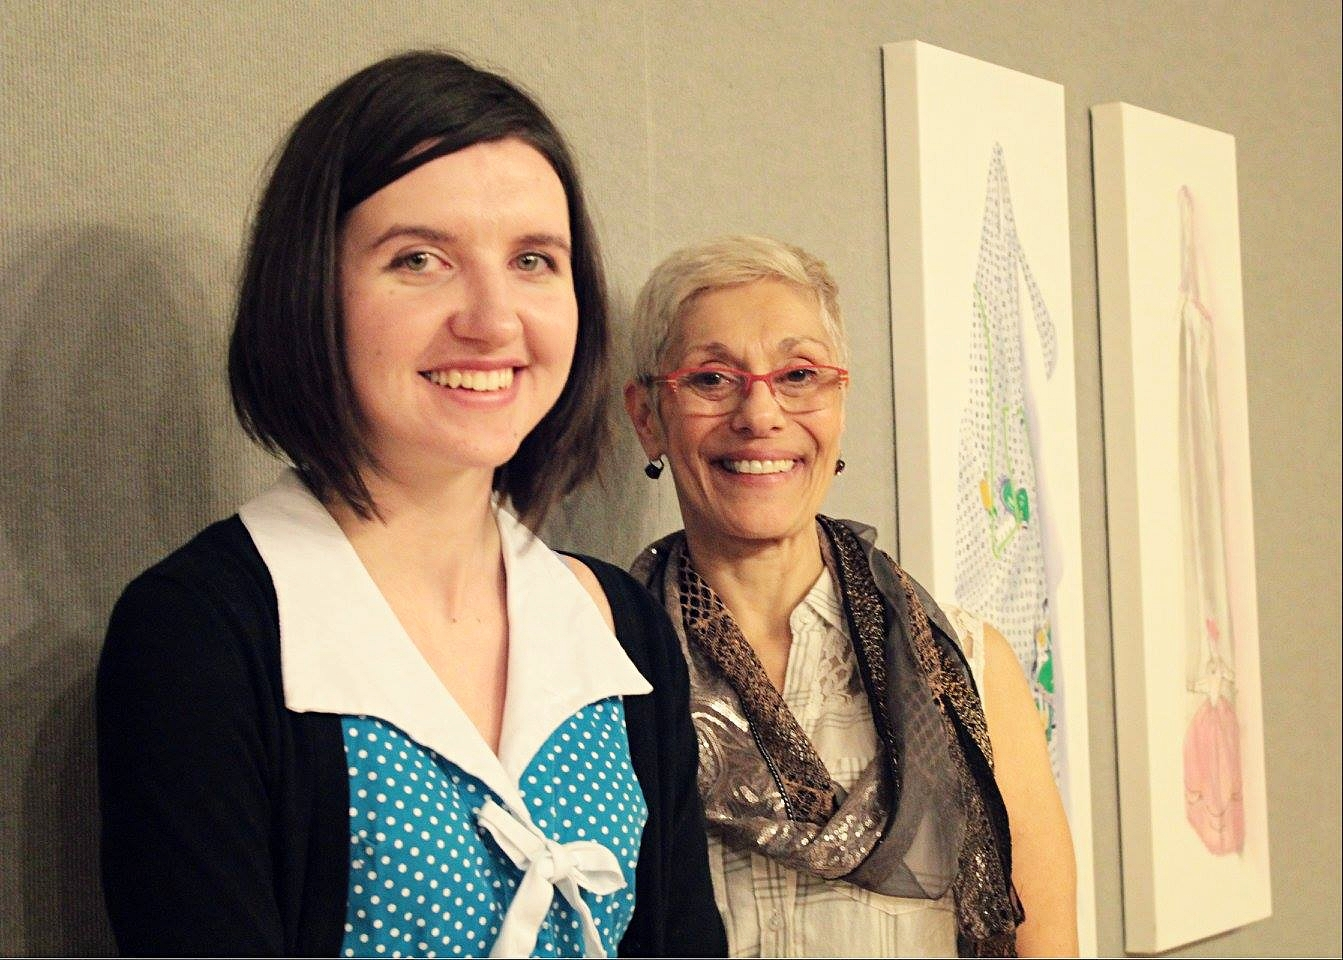 Photo by Jodie Delsere. Featured exhibiting artists - Marissa Solini (Left) and Kathleen Caprario (Right)